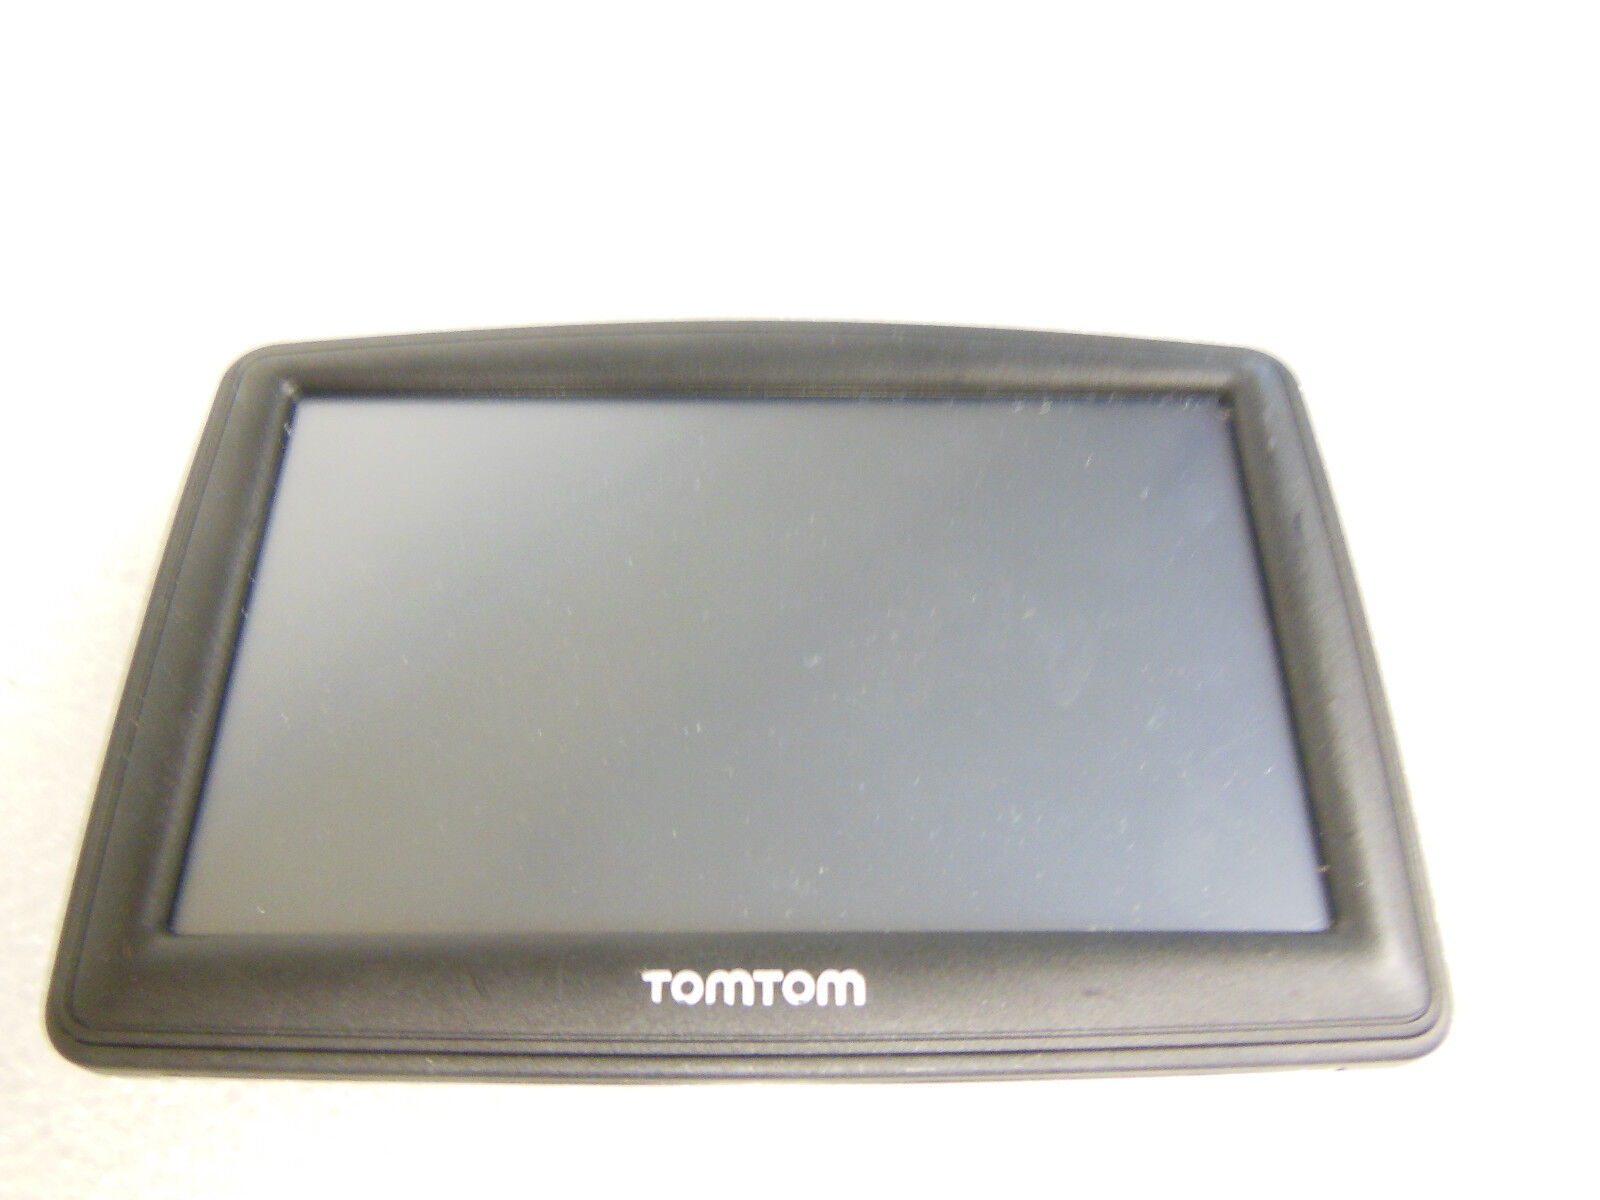 TomTom Smart GPS - *Unit Only*